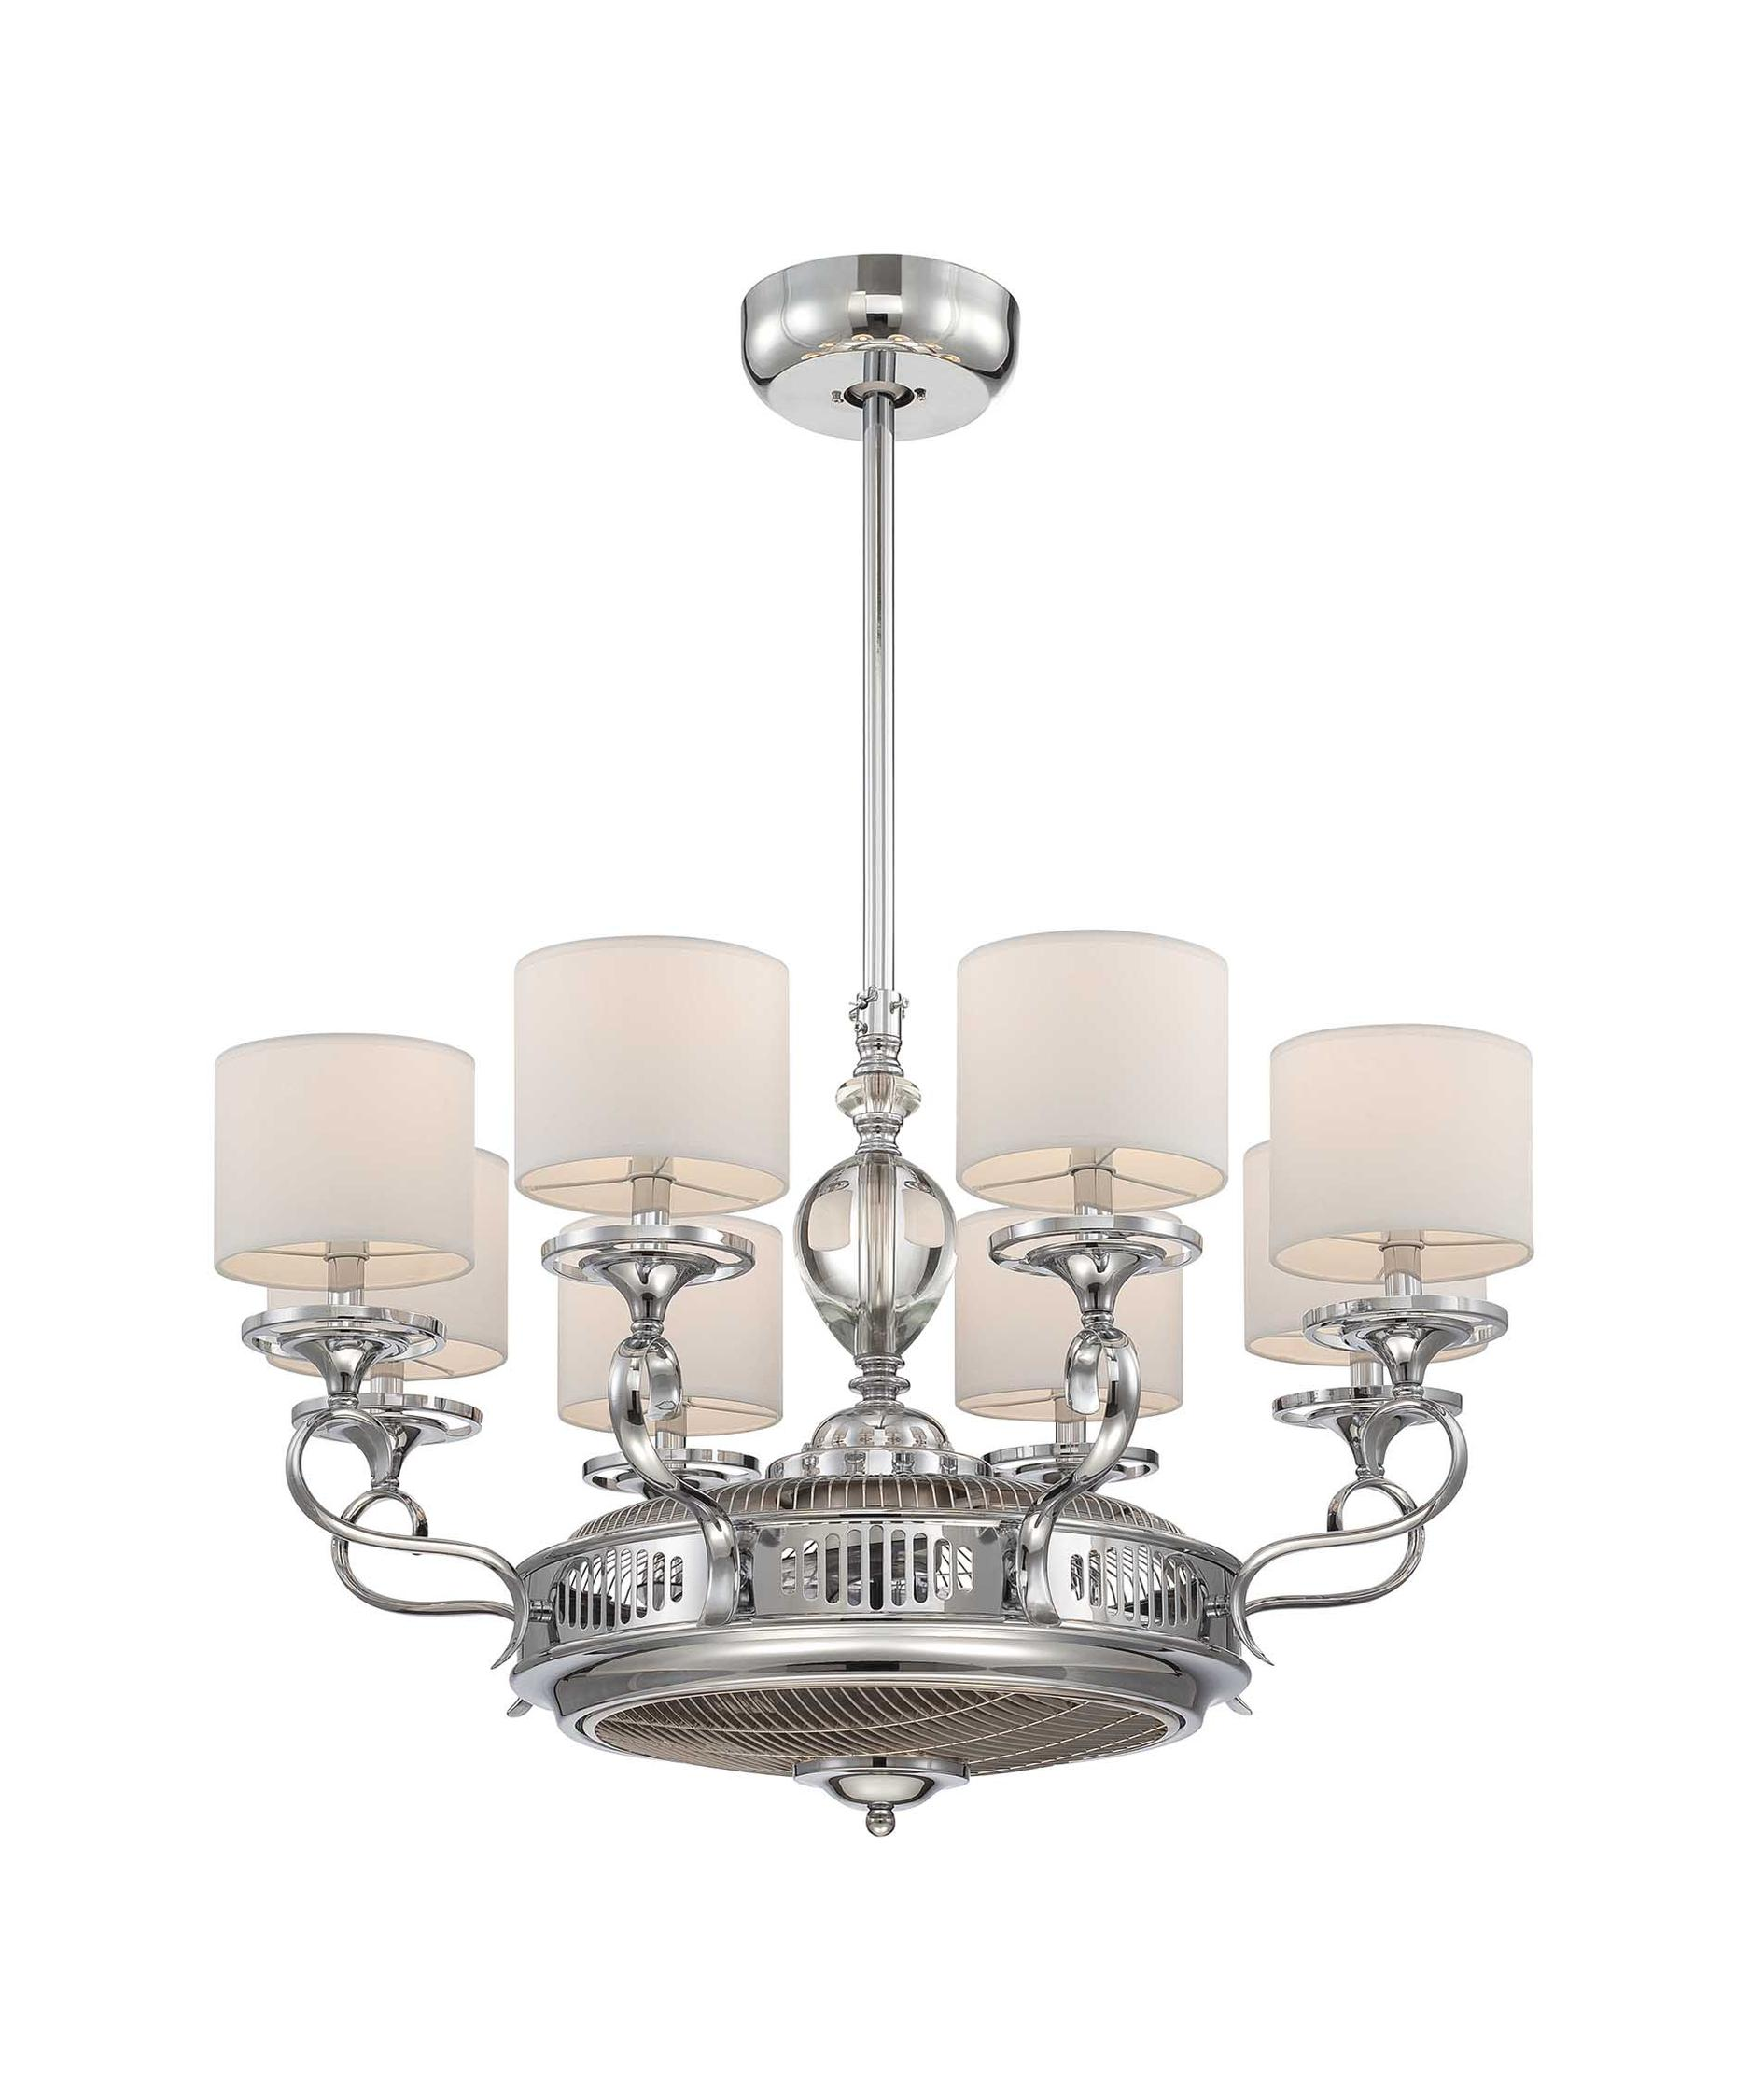 Savoy House Levantara 34 Inch Chandelier Ceiling Fan | Capitol ...:Shown in Chrome finish and White shade,Lighting